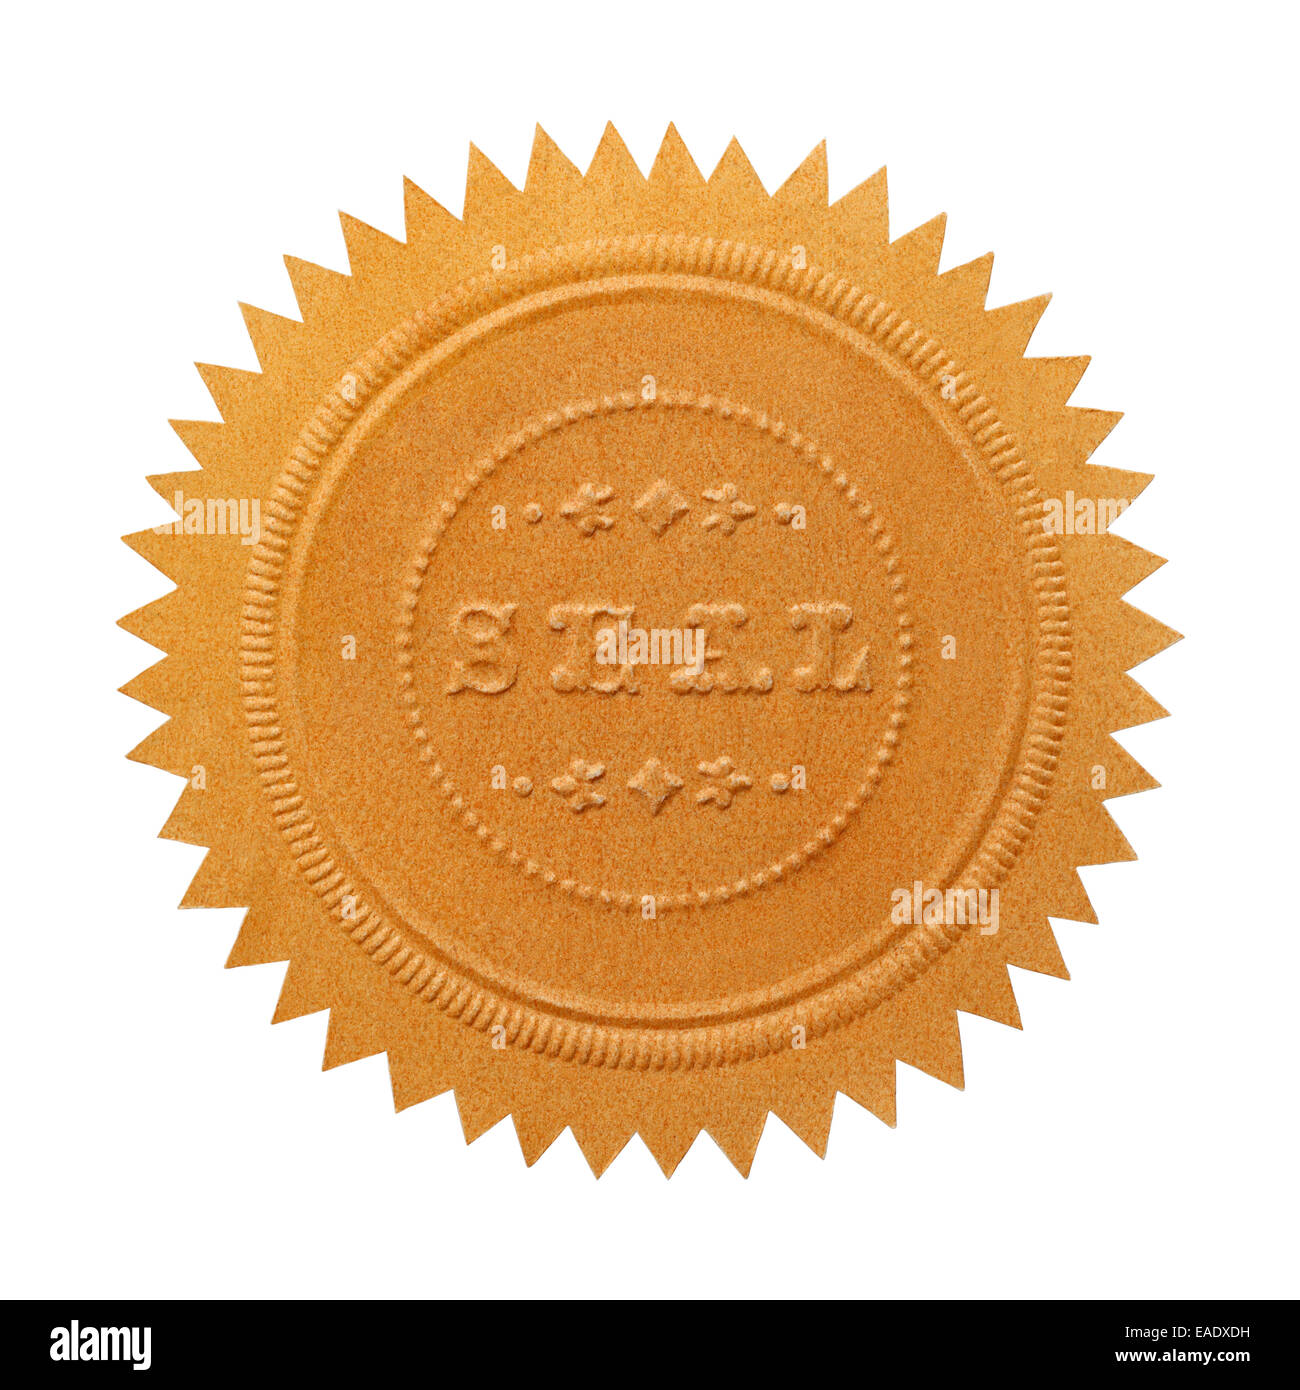 Large Embossed Gold Seal With Copy Space Isolated on White Background. - Stock Image